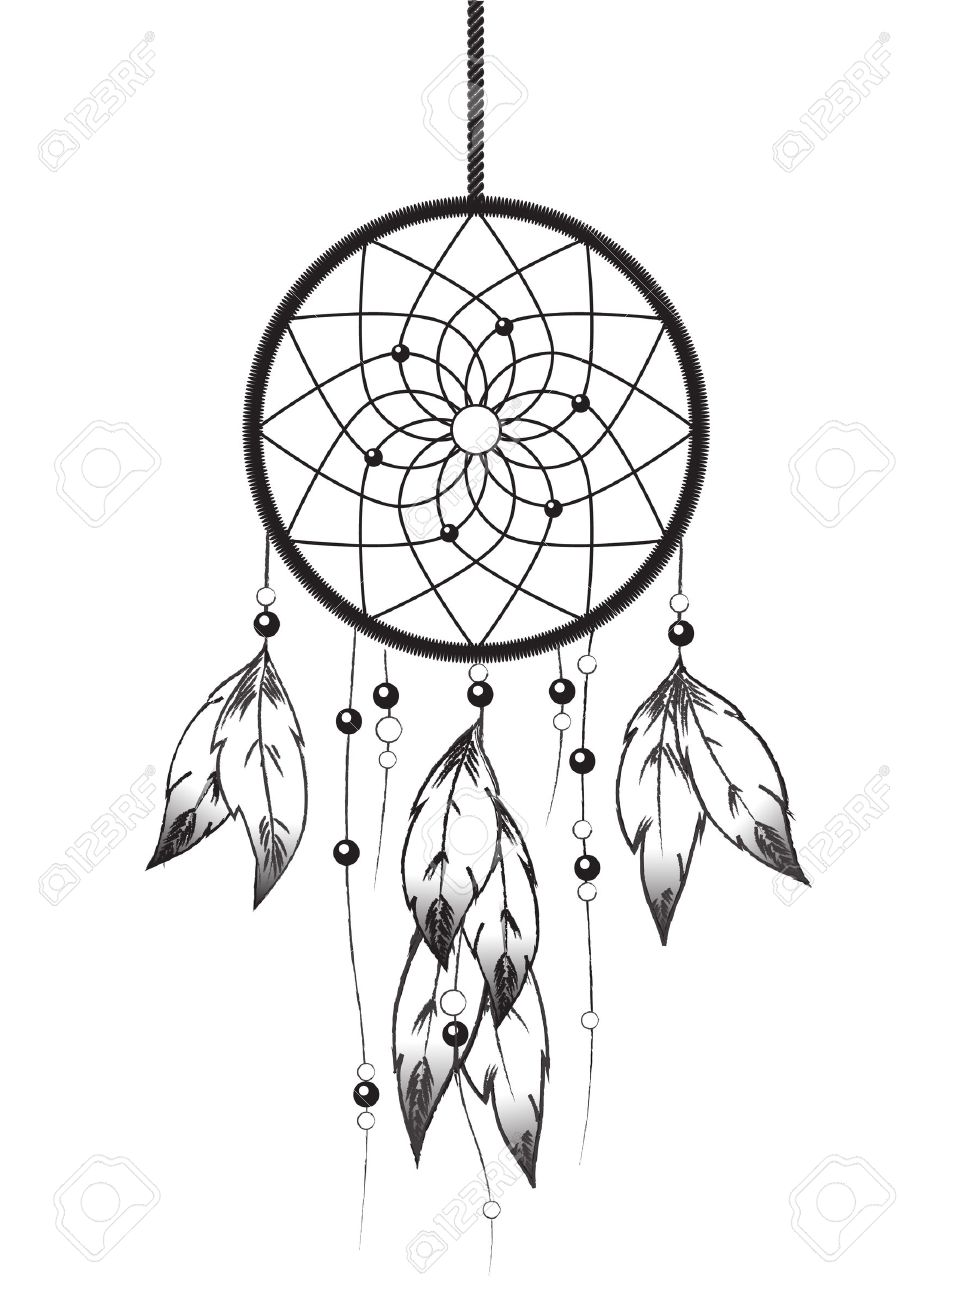 957x1300 Black And White Illustration Of A Dreamcatcher. Royalty Free